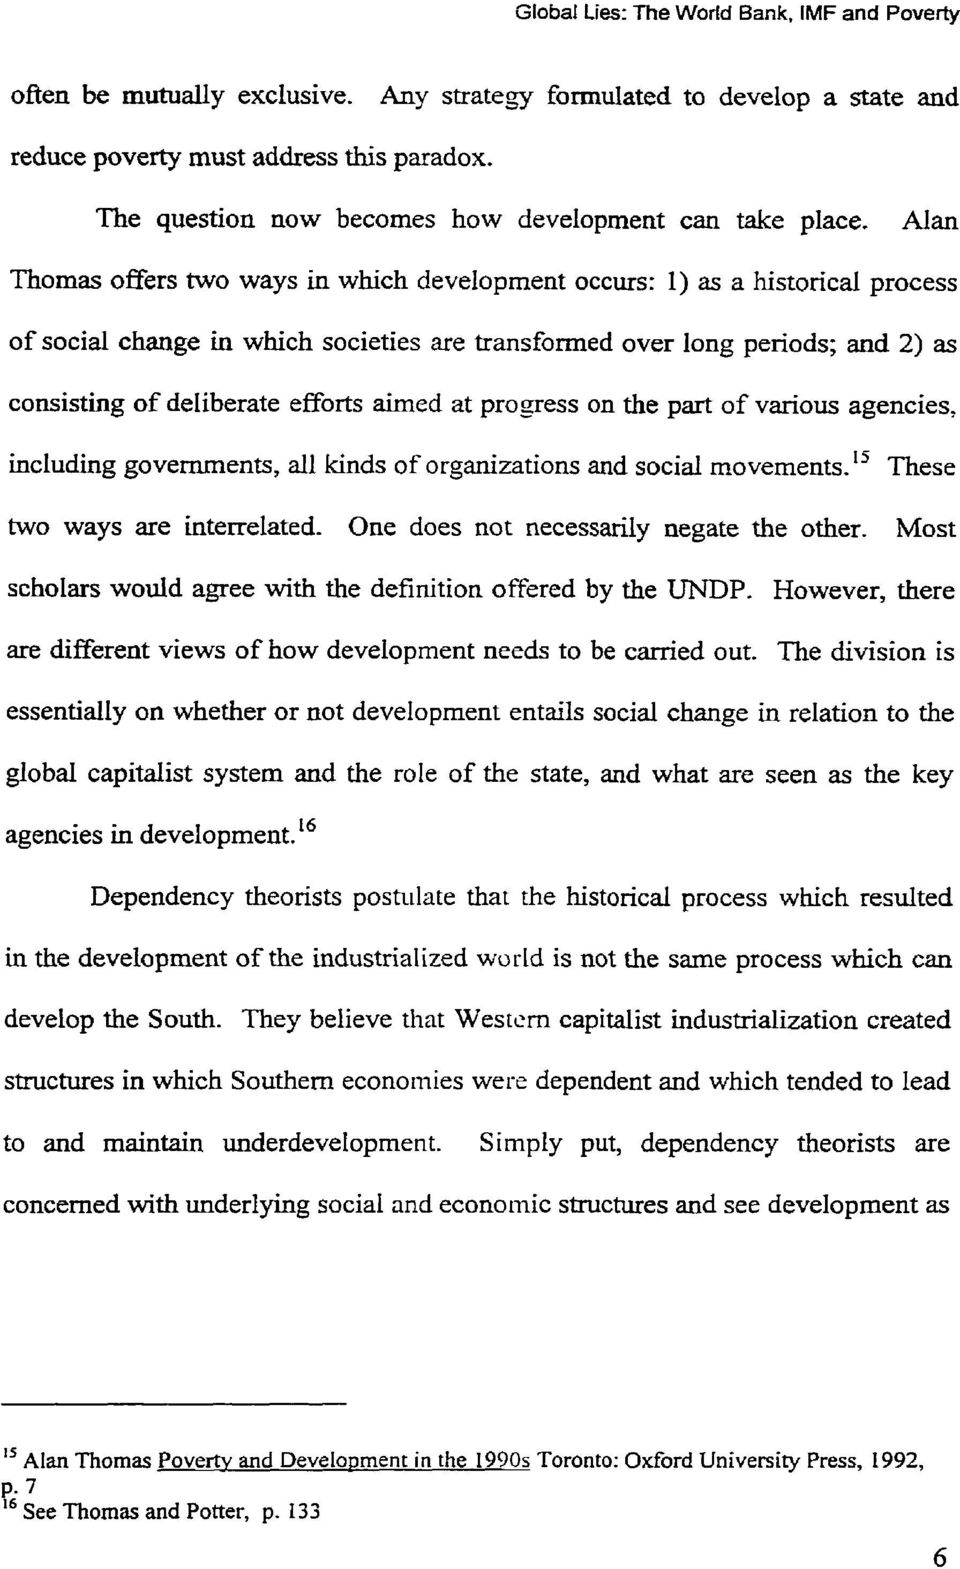 Alan Thomas offers two ways in which development occurs: 1) as a histoncal process of social change in which societies are transformeci over long periods; and 2) as consisting of deliberate efforts